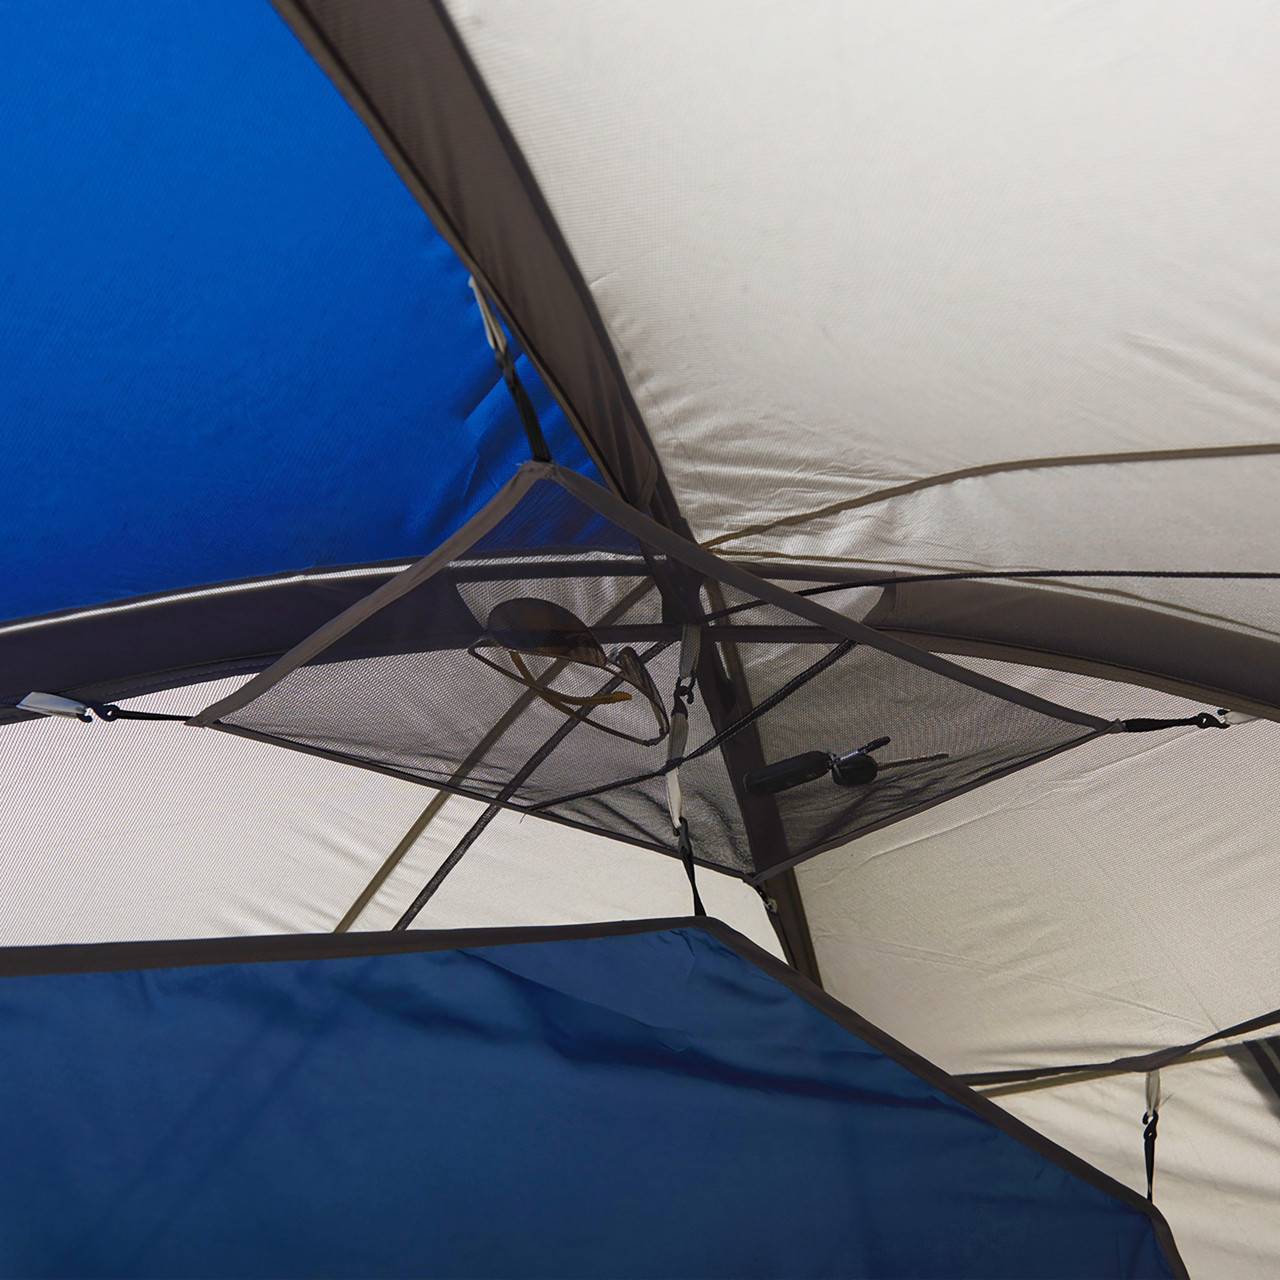 Interior of Wenzel Pinyon 10 Person Dome Tent, blue/white, showing gear loft